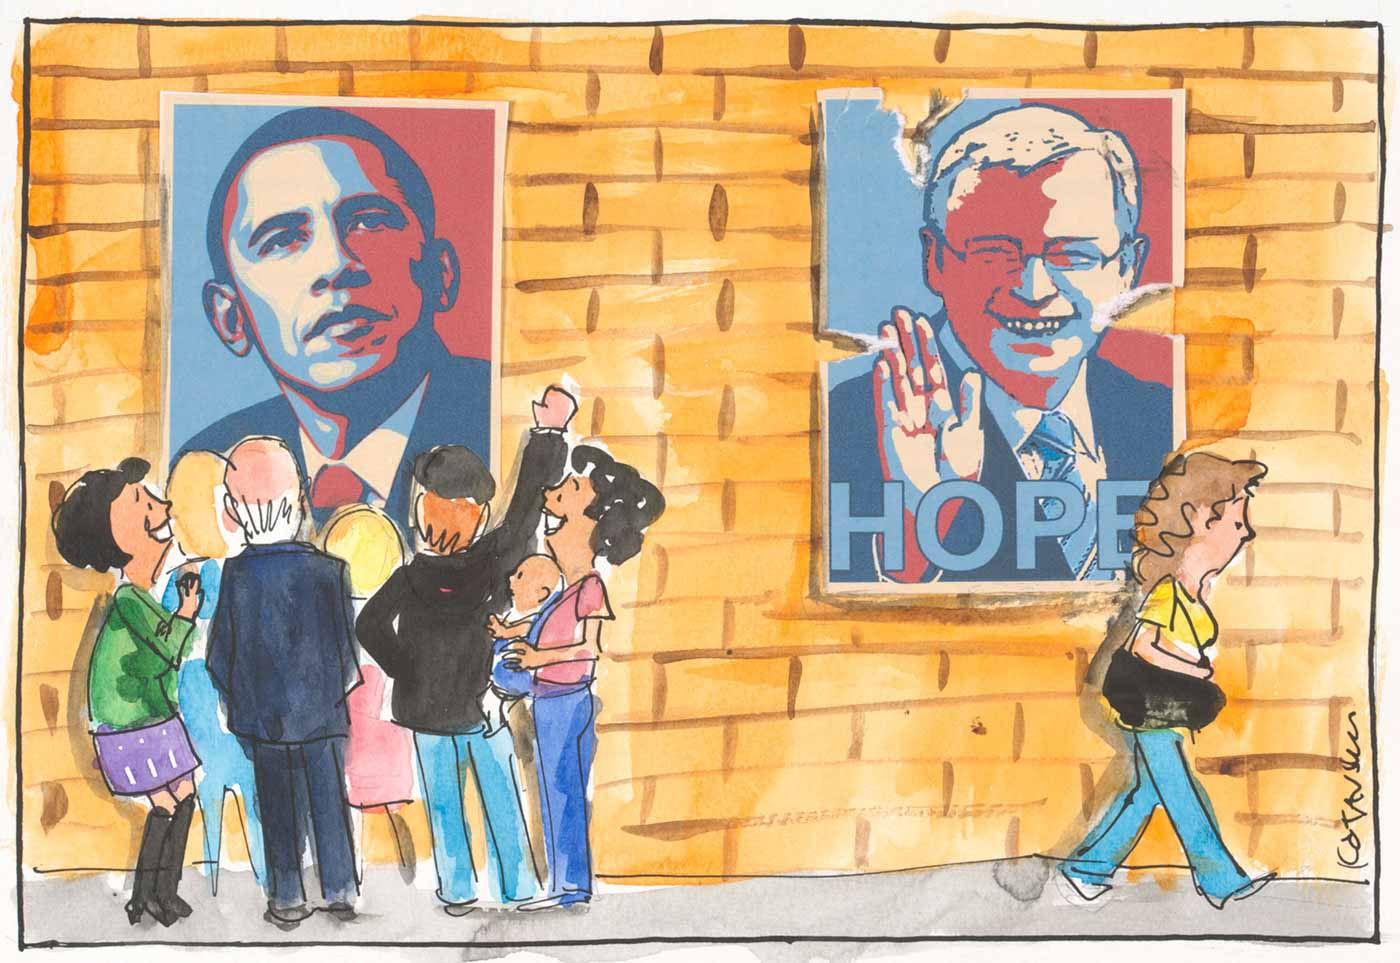 A colour cartoon showing two posters on a brick wall. The poster at the left shows a head and shoulders view of Barack Obama, looking resolute and composed. A small group of people are gathered in front of the poster, expressing their admiration for President Obama. Some of them smile, while one raises a fist in the air. The poster at the right shows a head and shoulders view of Kevin Rudd. He smiles at the viewer and has his right hand raised with his palm facing away from him. The word 'hope' is at the bottom of the poster. There are torn edges on the poster; the top right-hand corner is peeling away from the wall. A woman walks past the poster, ignoring it. - click to view larger image